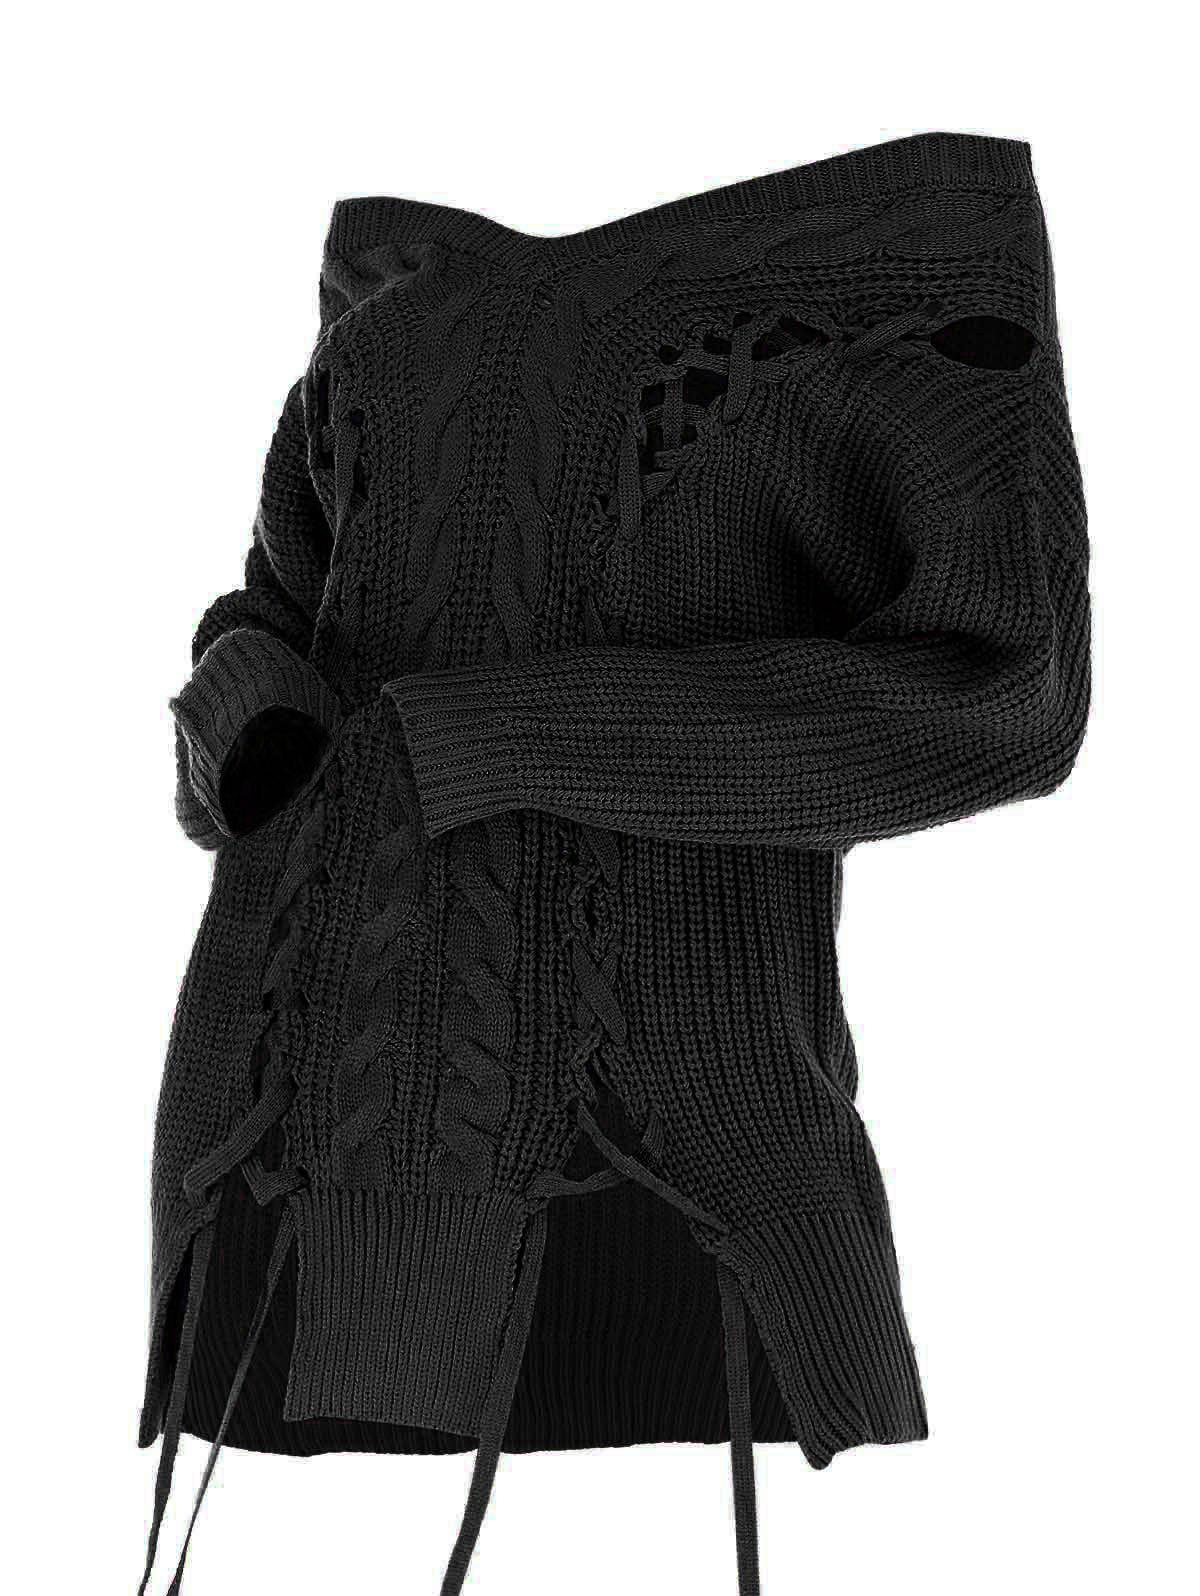 V Neck Lace Up Cable Knit Sweater - BLACK M